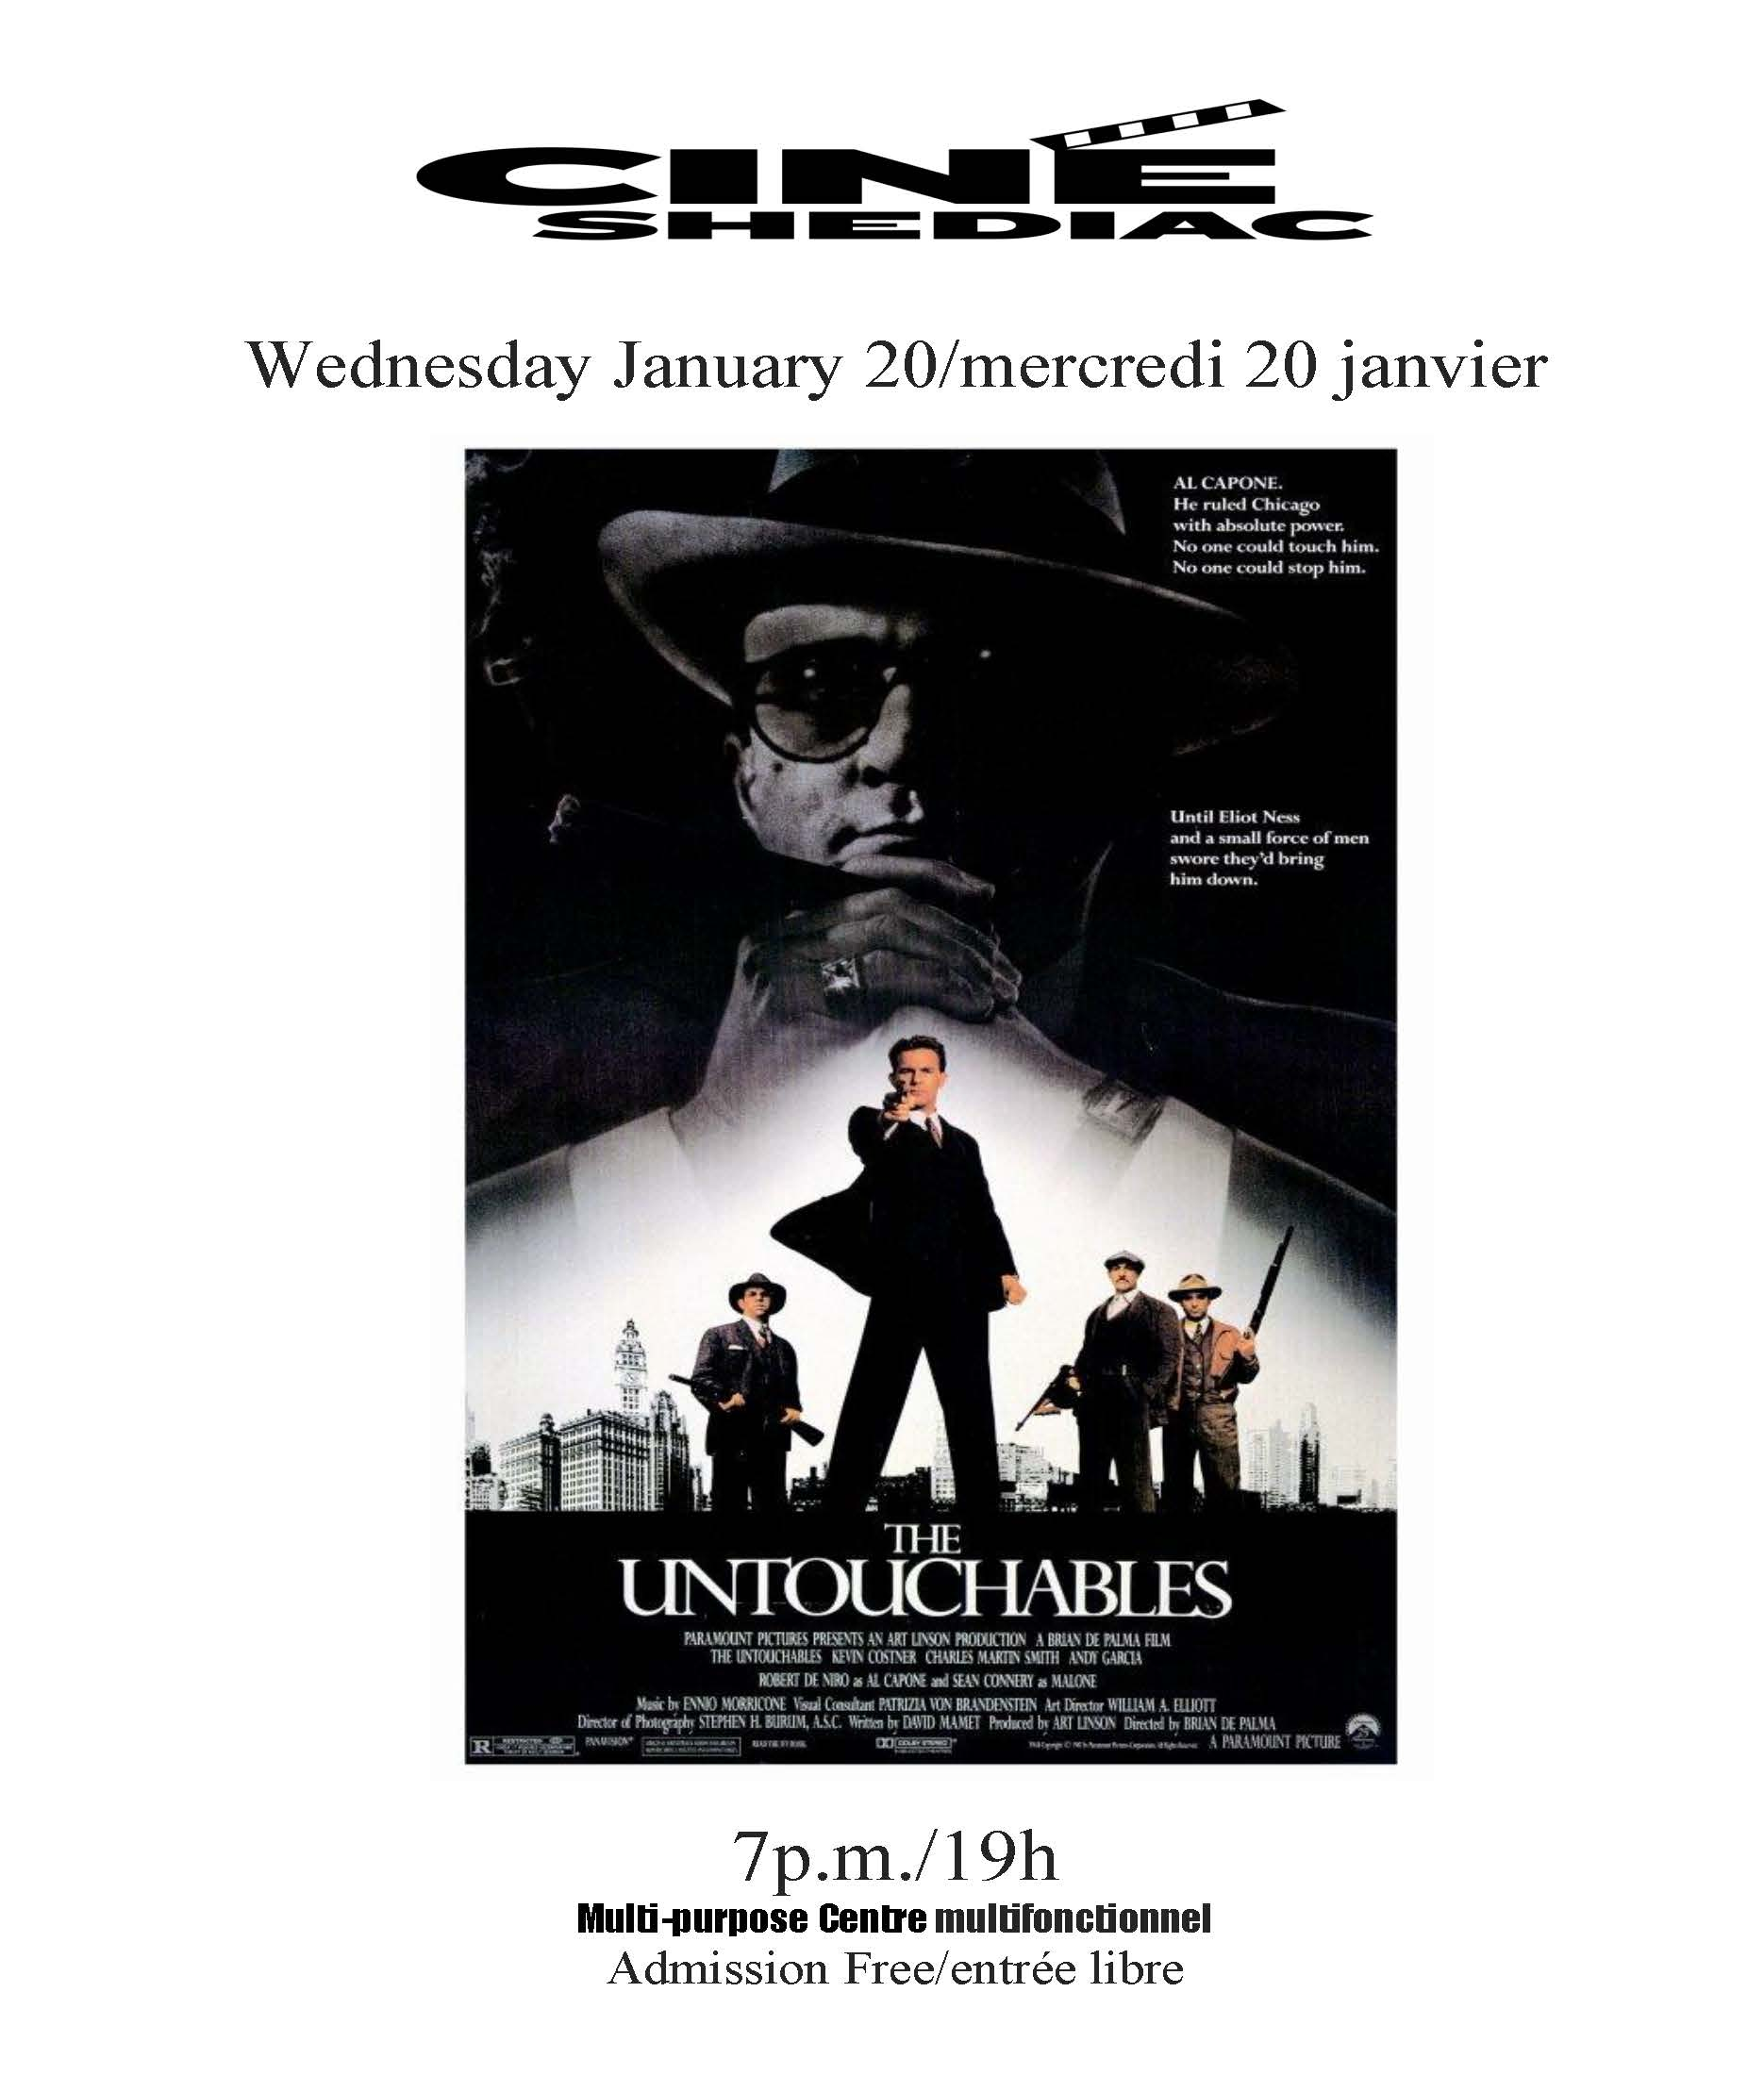 The Untouchables 20 janvier 2021